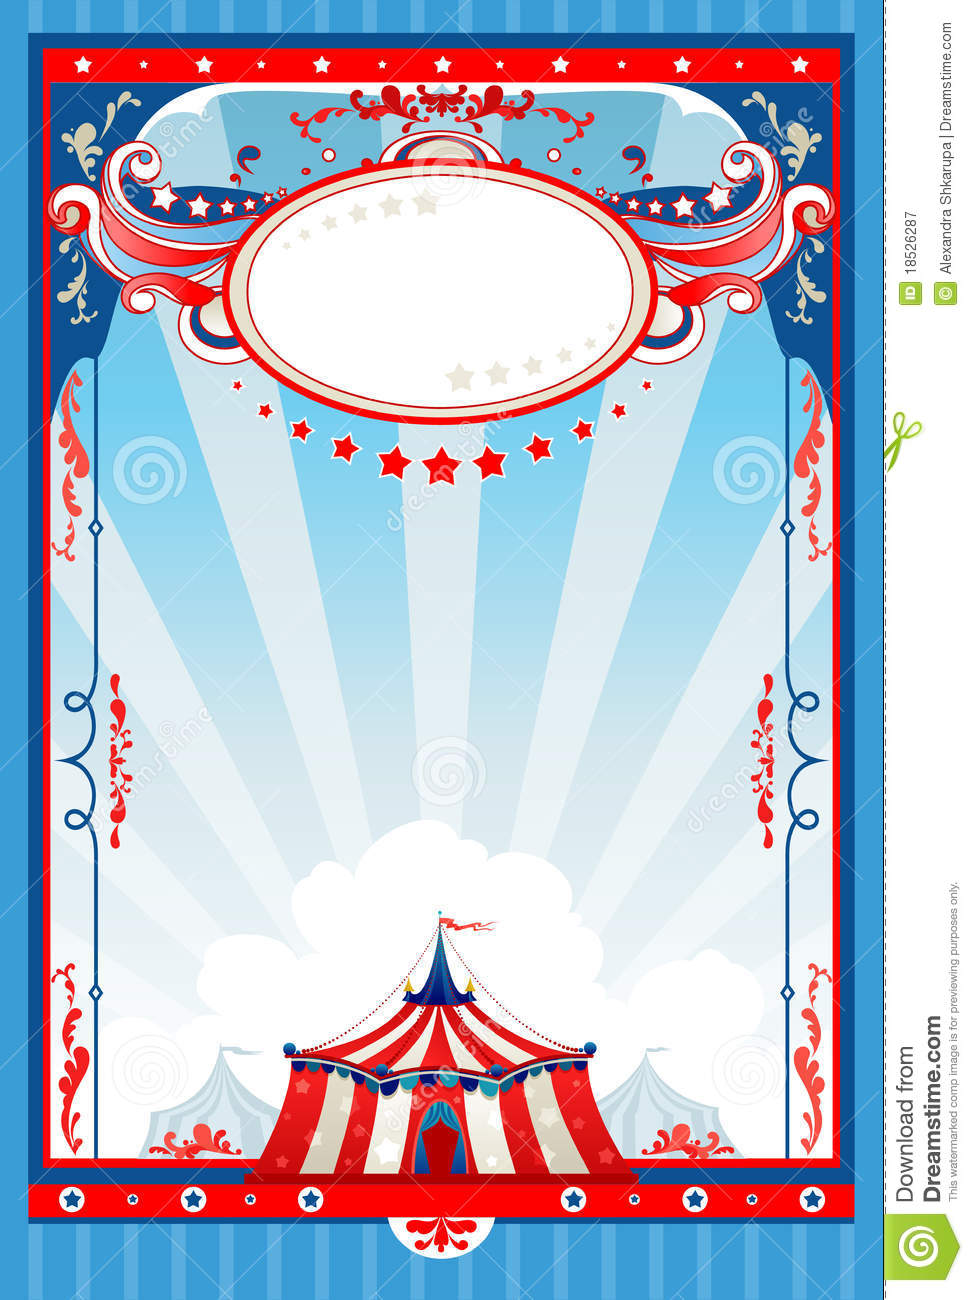 circus poster template free download